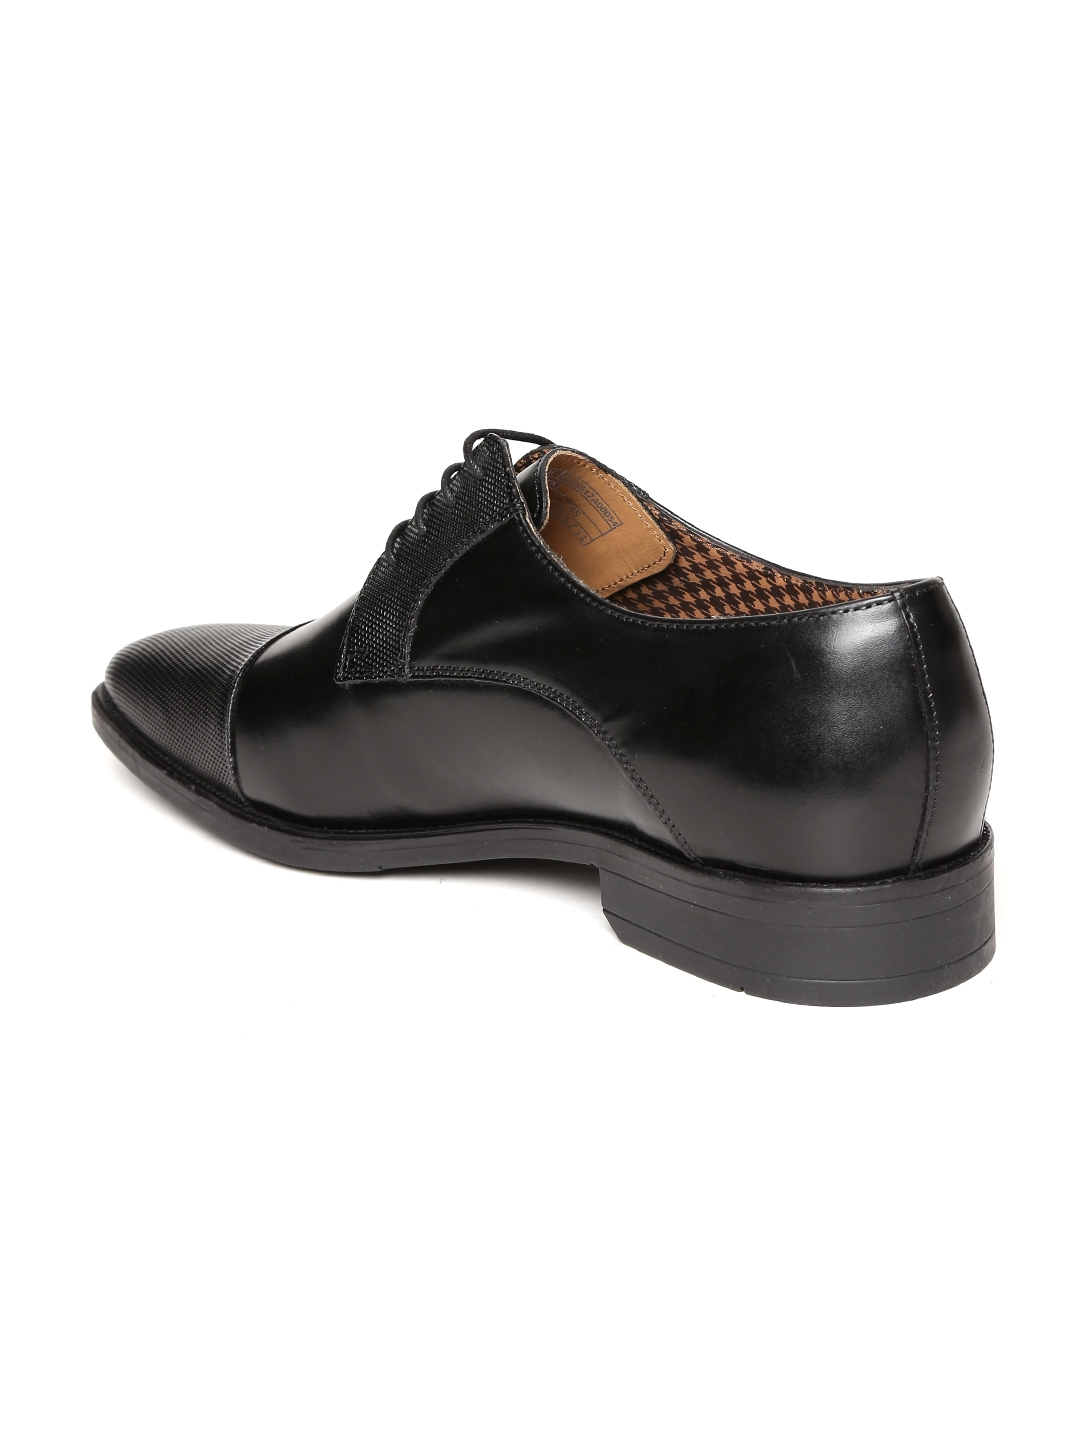 50ca28ee1e Buy Van Heusen Men Black Leather Derby Formal Shoes - Formal Shoes ...